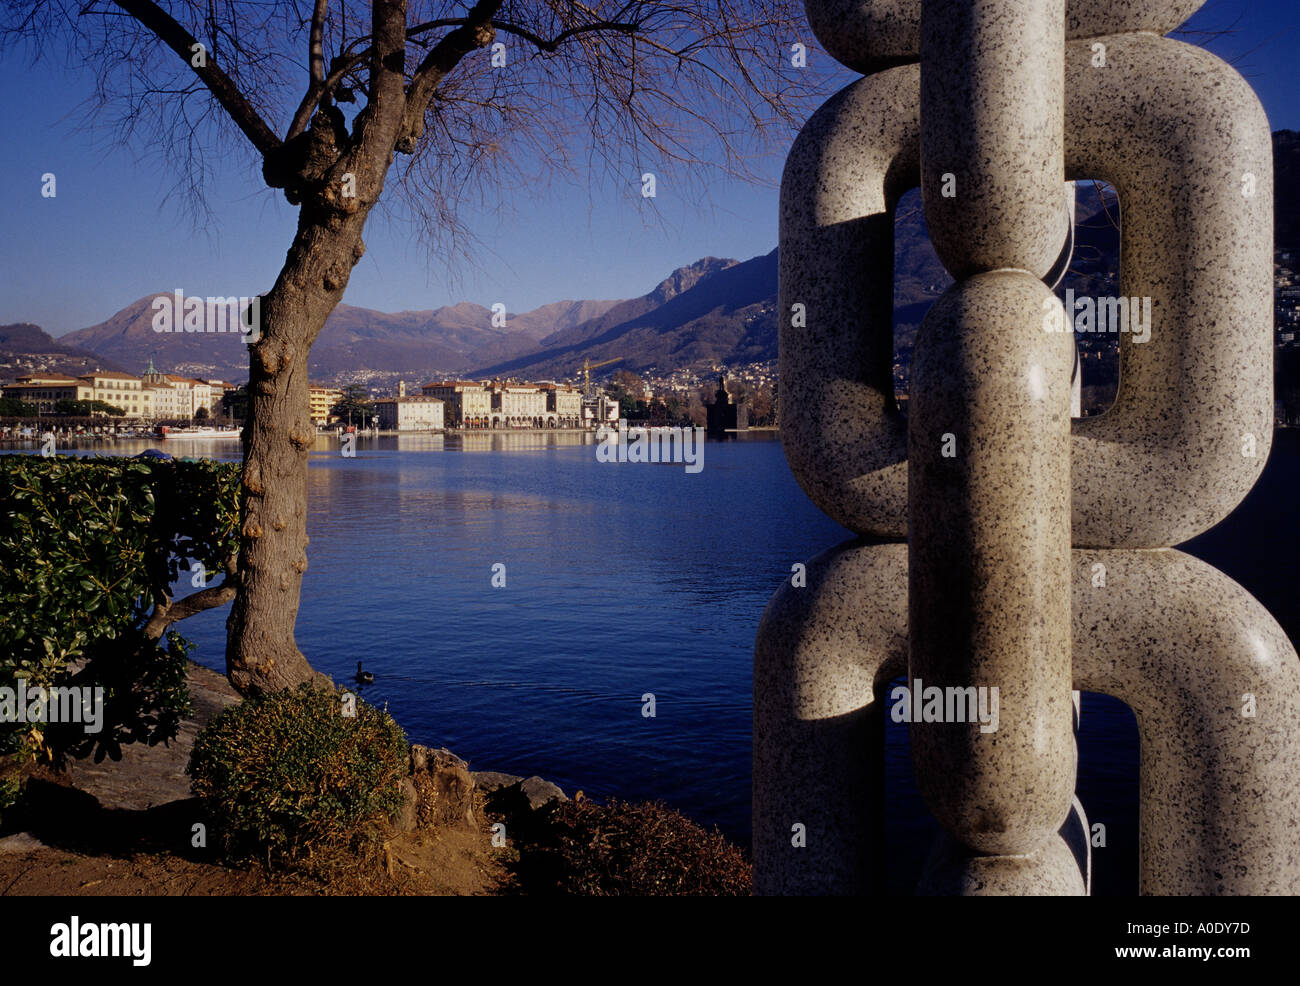 a view of the Ceresio lake and the city of Lugano and a sculpture on the right side Switzerland Stock Photo